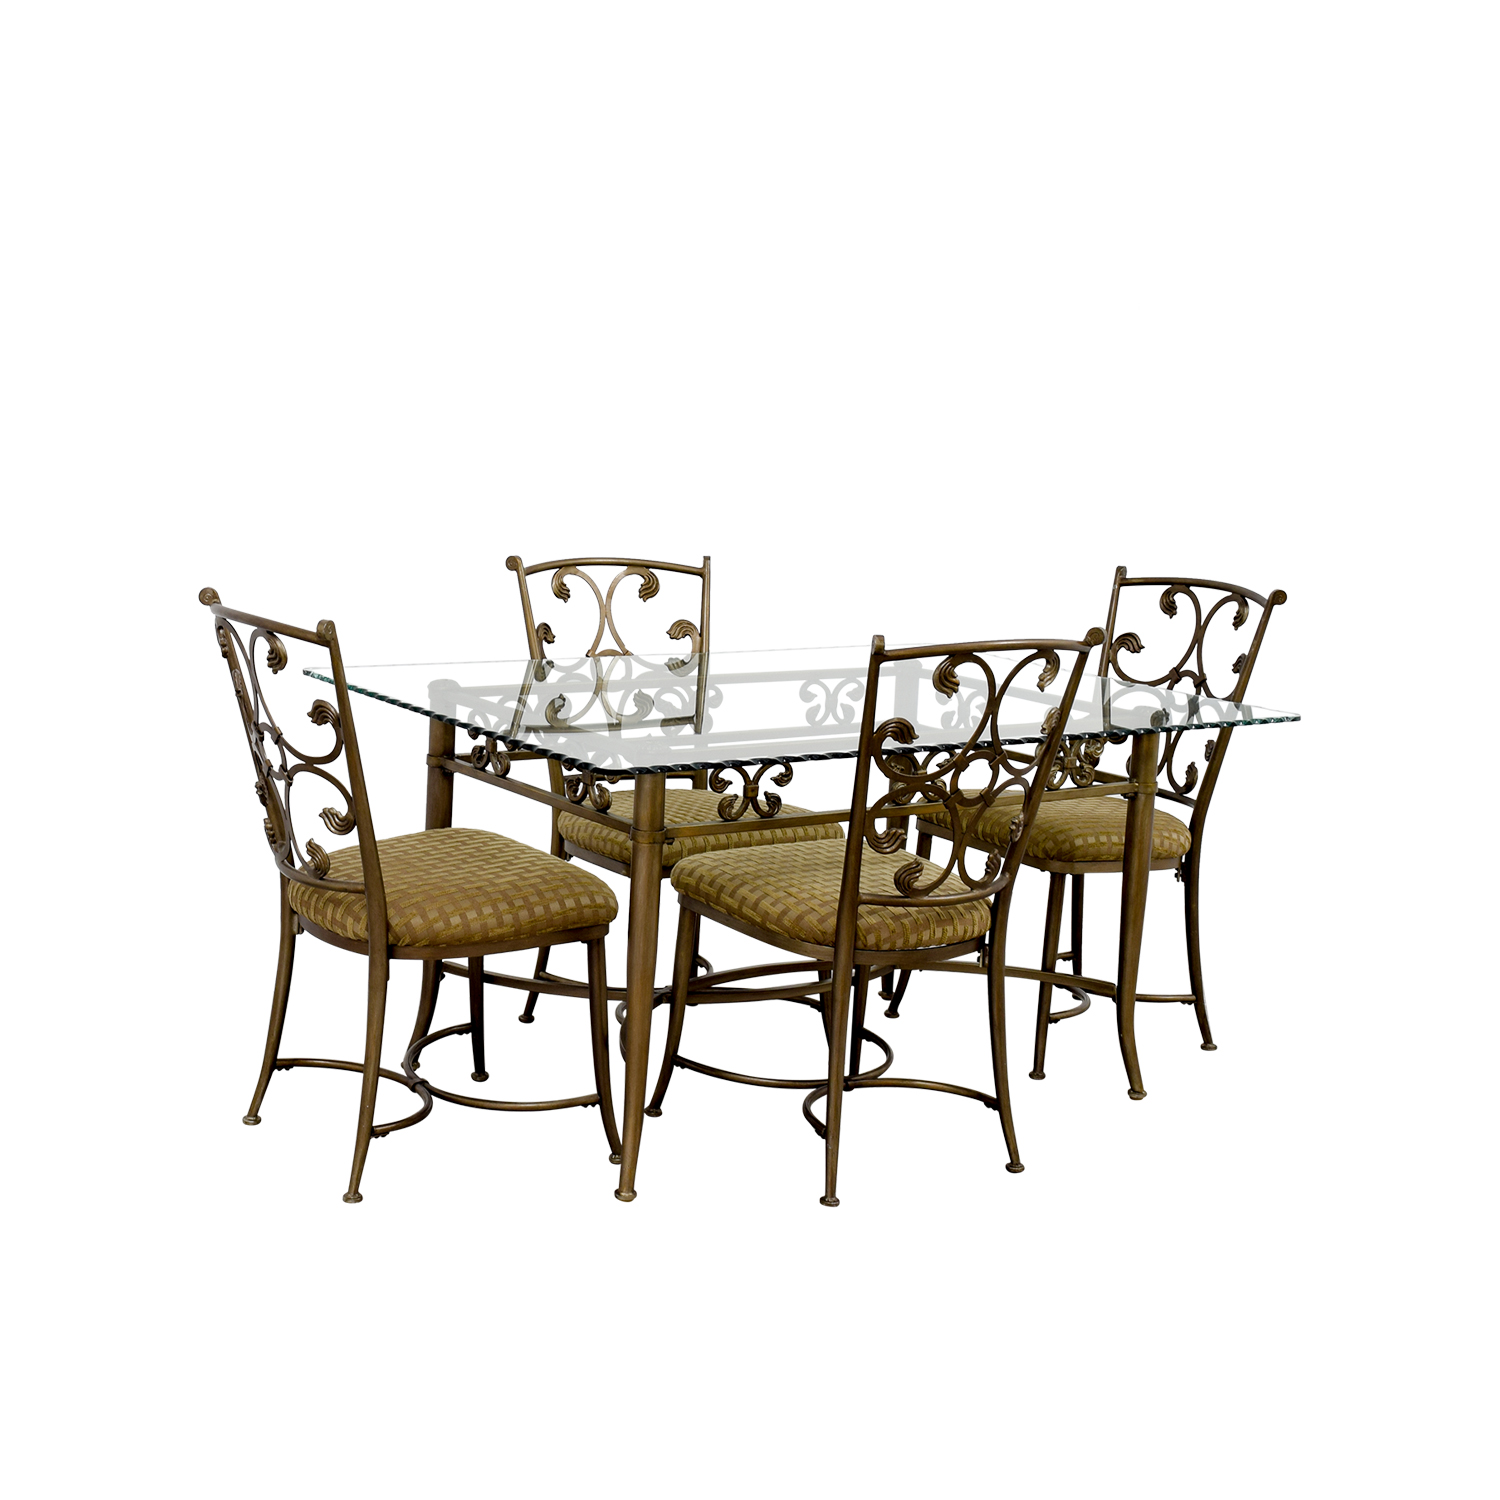 72 Off Glass And Gold Wrought Iron Dining Set Tables